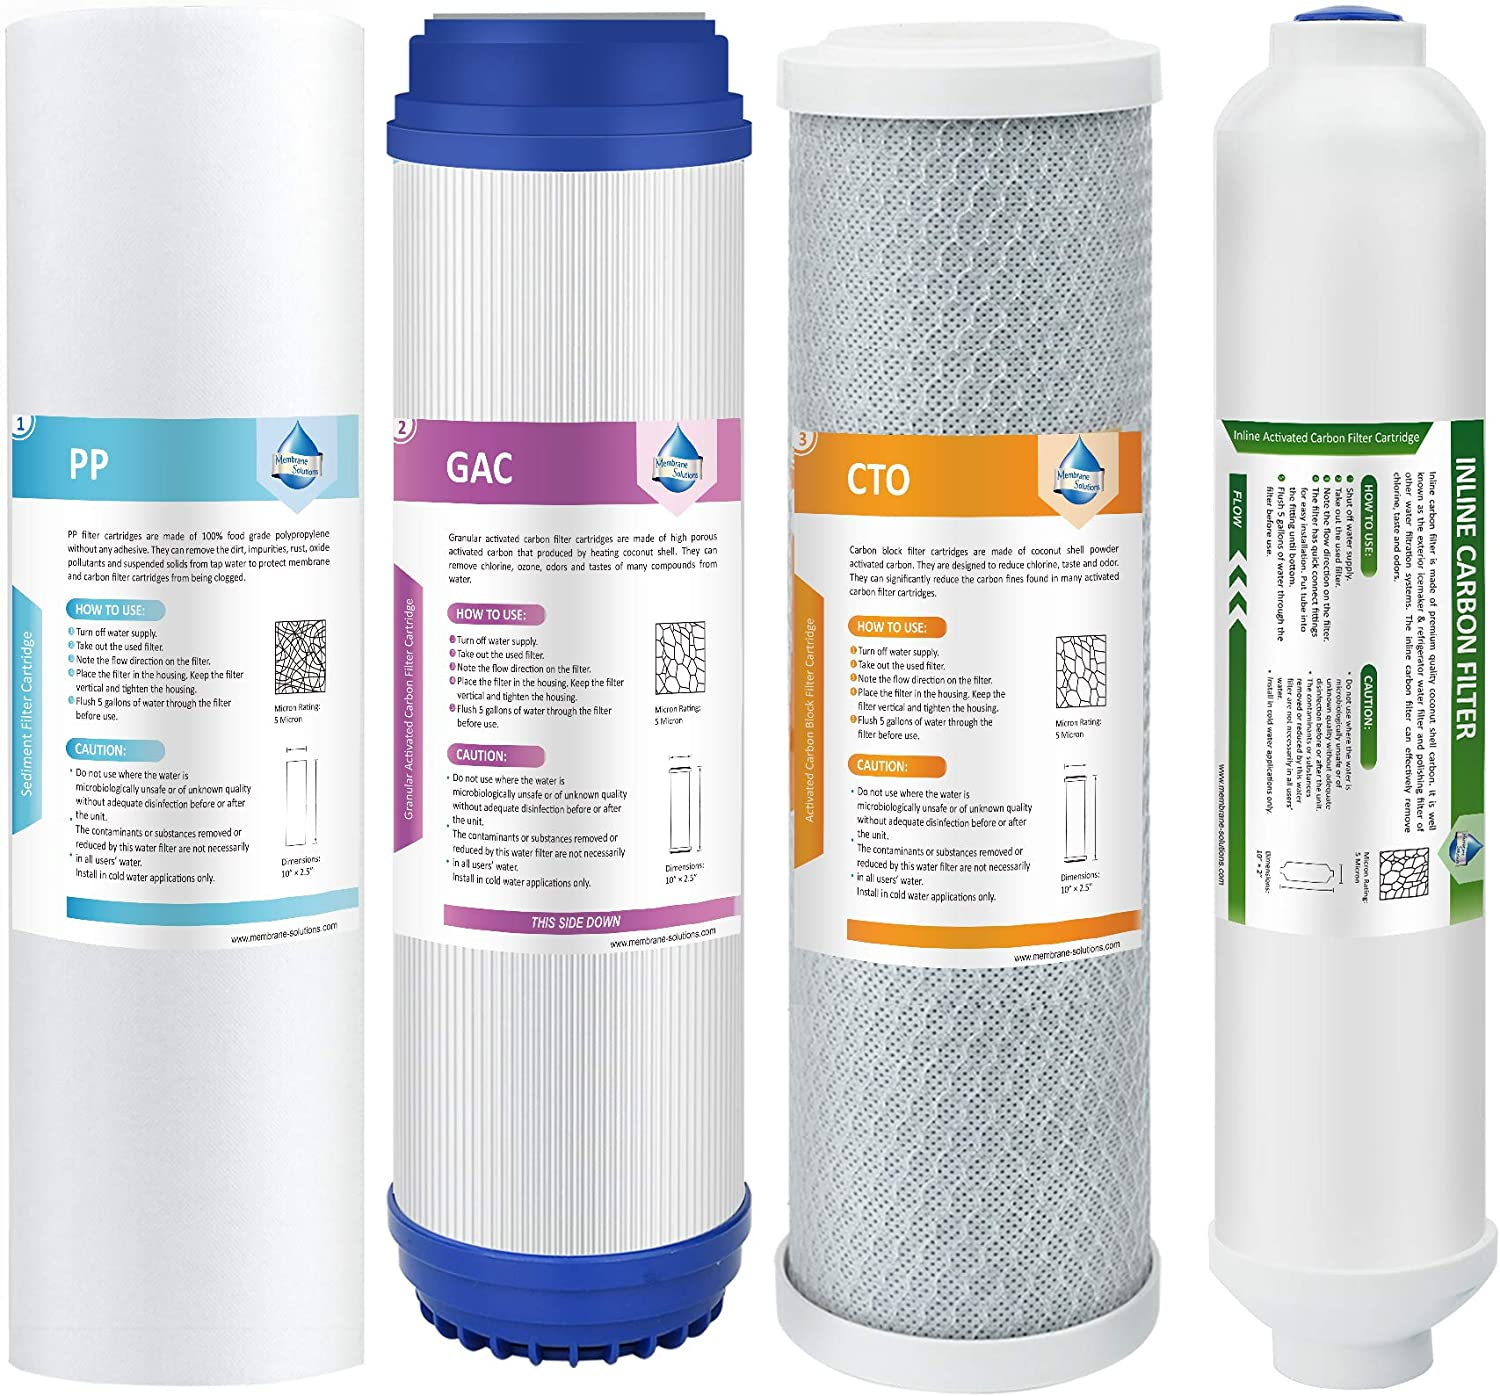 Membrane Solutions Reverse Osmosis Filter Replacement, Universal Compatible 4-5 Stage RO Replacement Filter Cartridge Set 6 Month for Reverse Osmosis Water Filter System(Not Included RO Membrane)